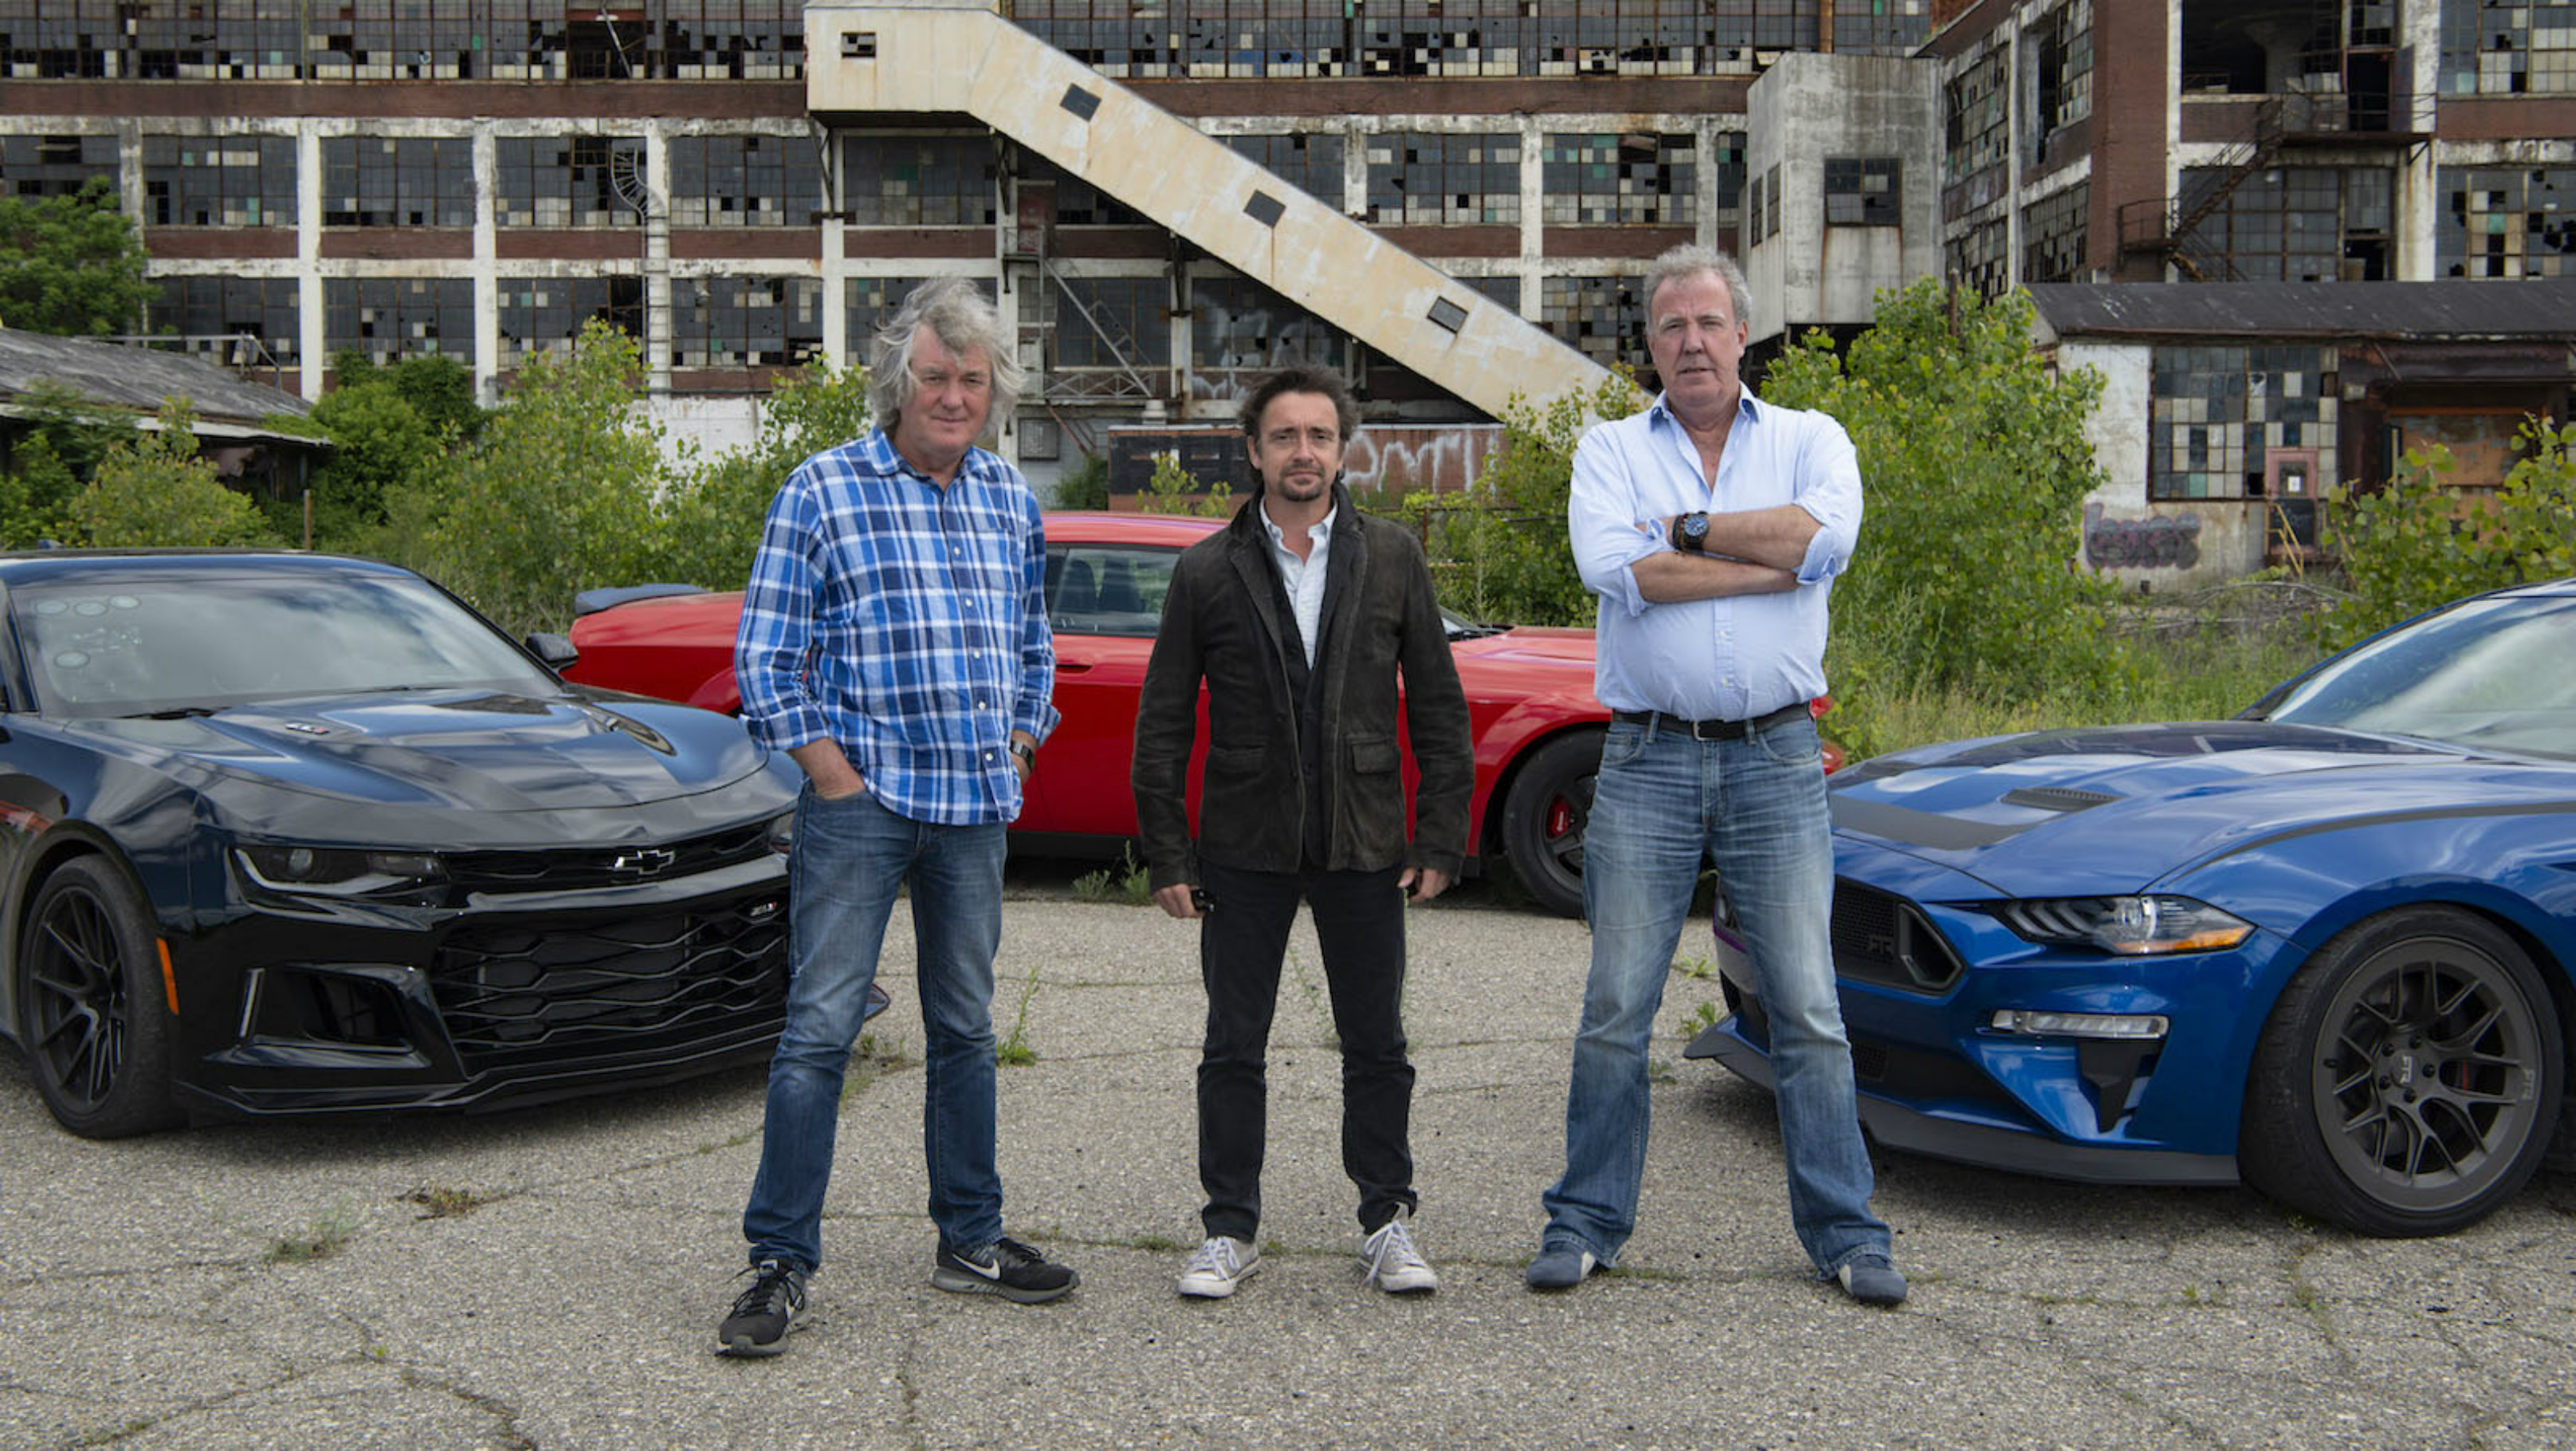 Season 3 of The Grand Tour